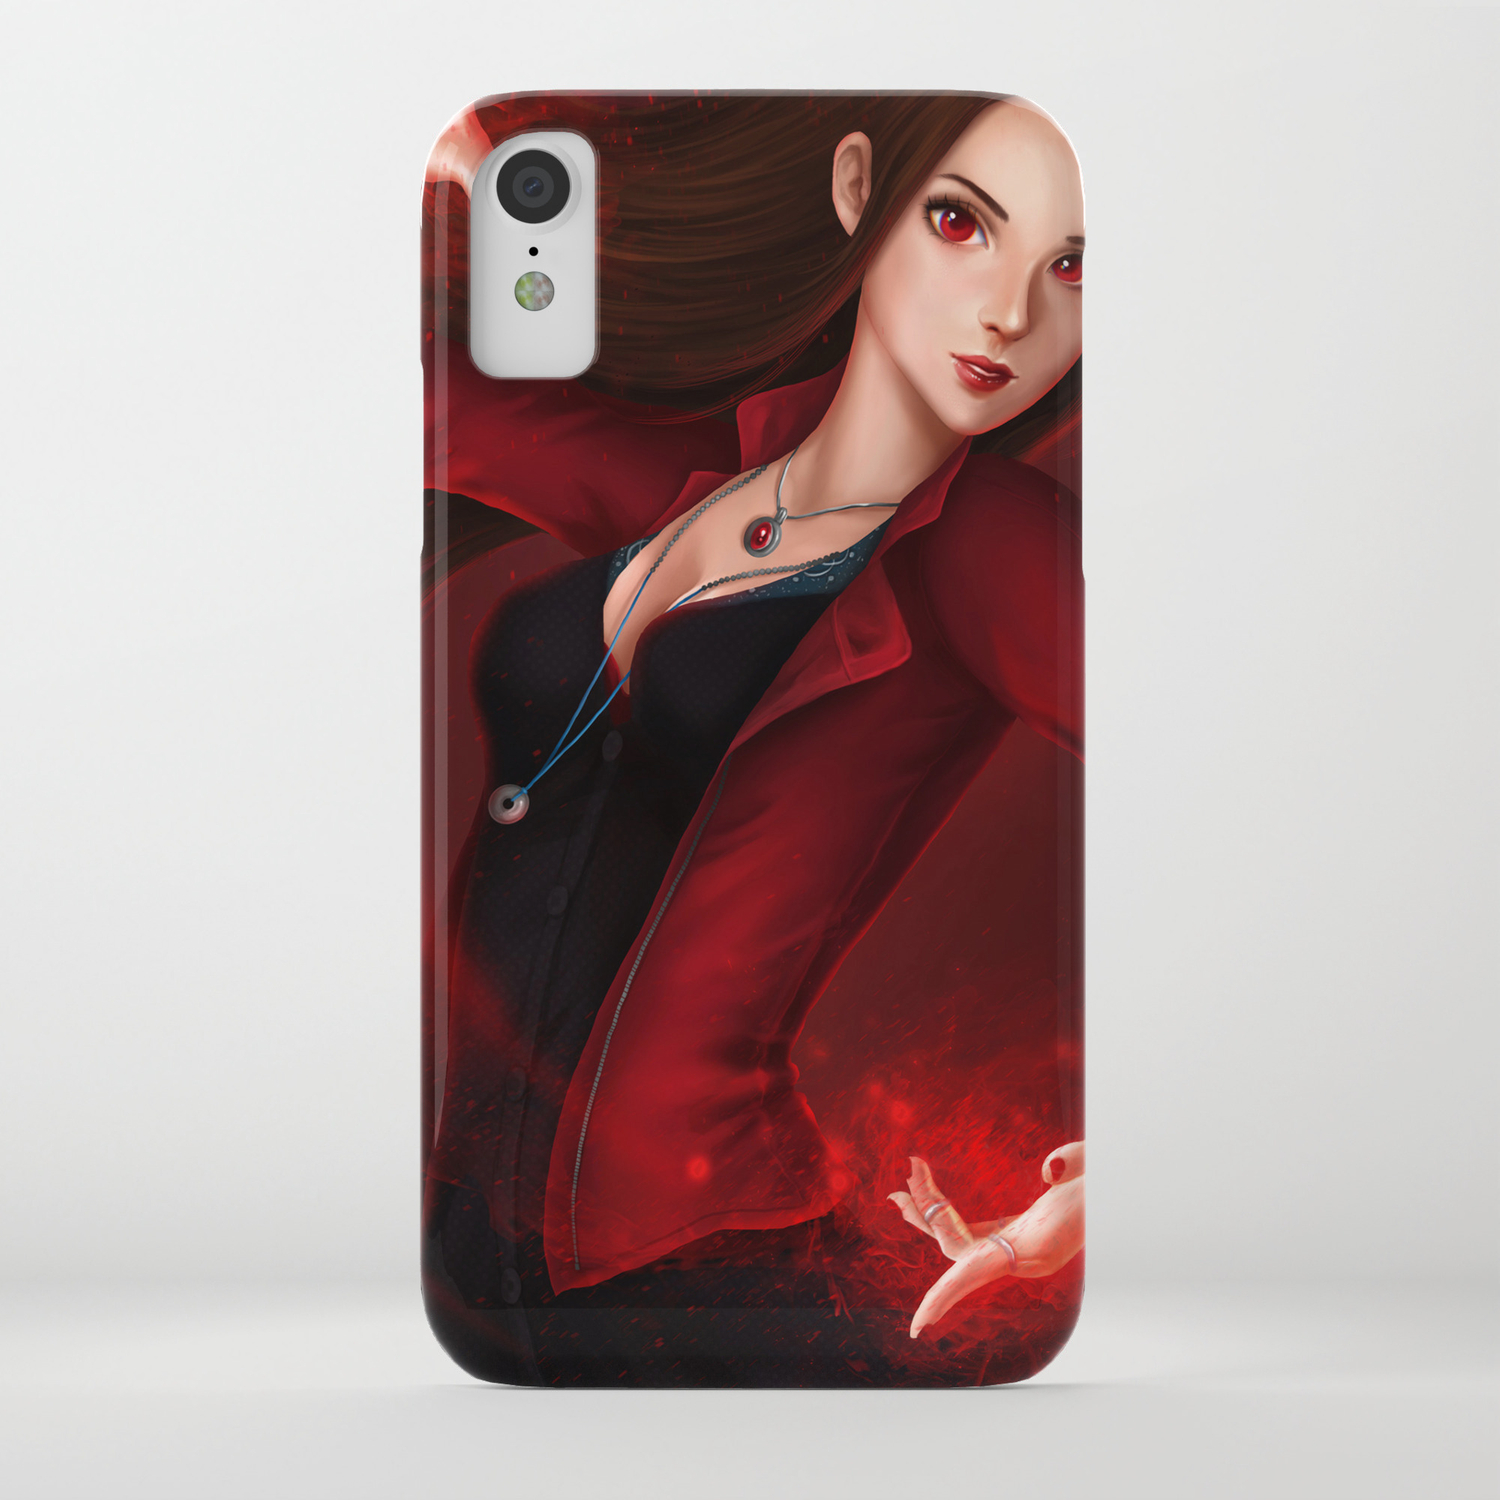 finest selection aa79c fbfe9 Scarlet Witch/Wanda Maximoff iPhone Case